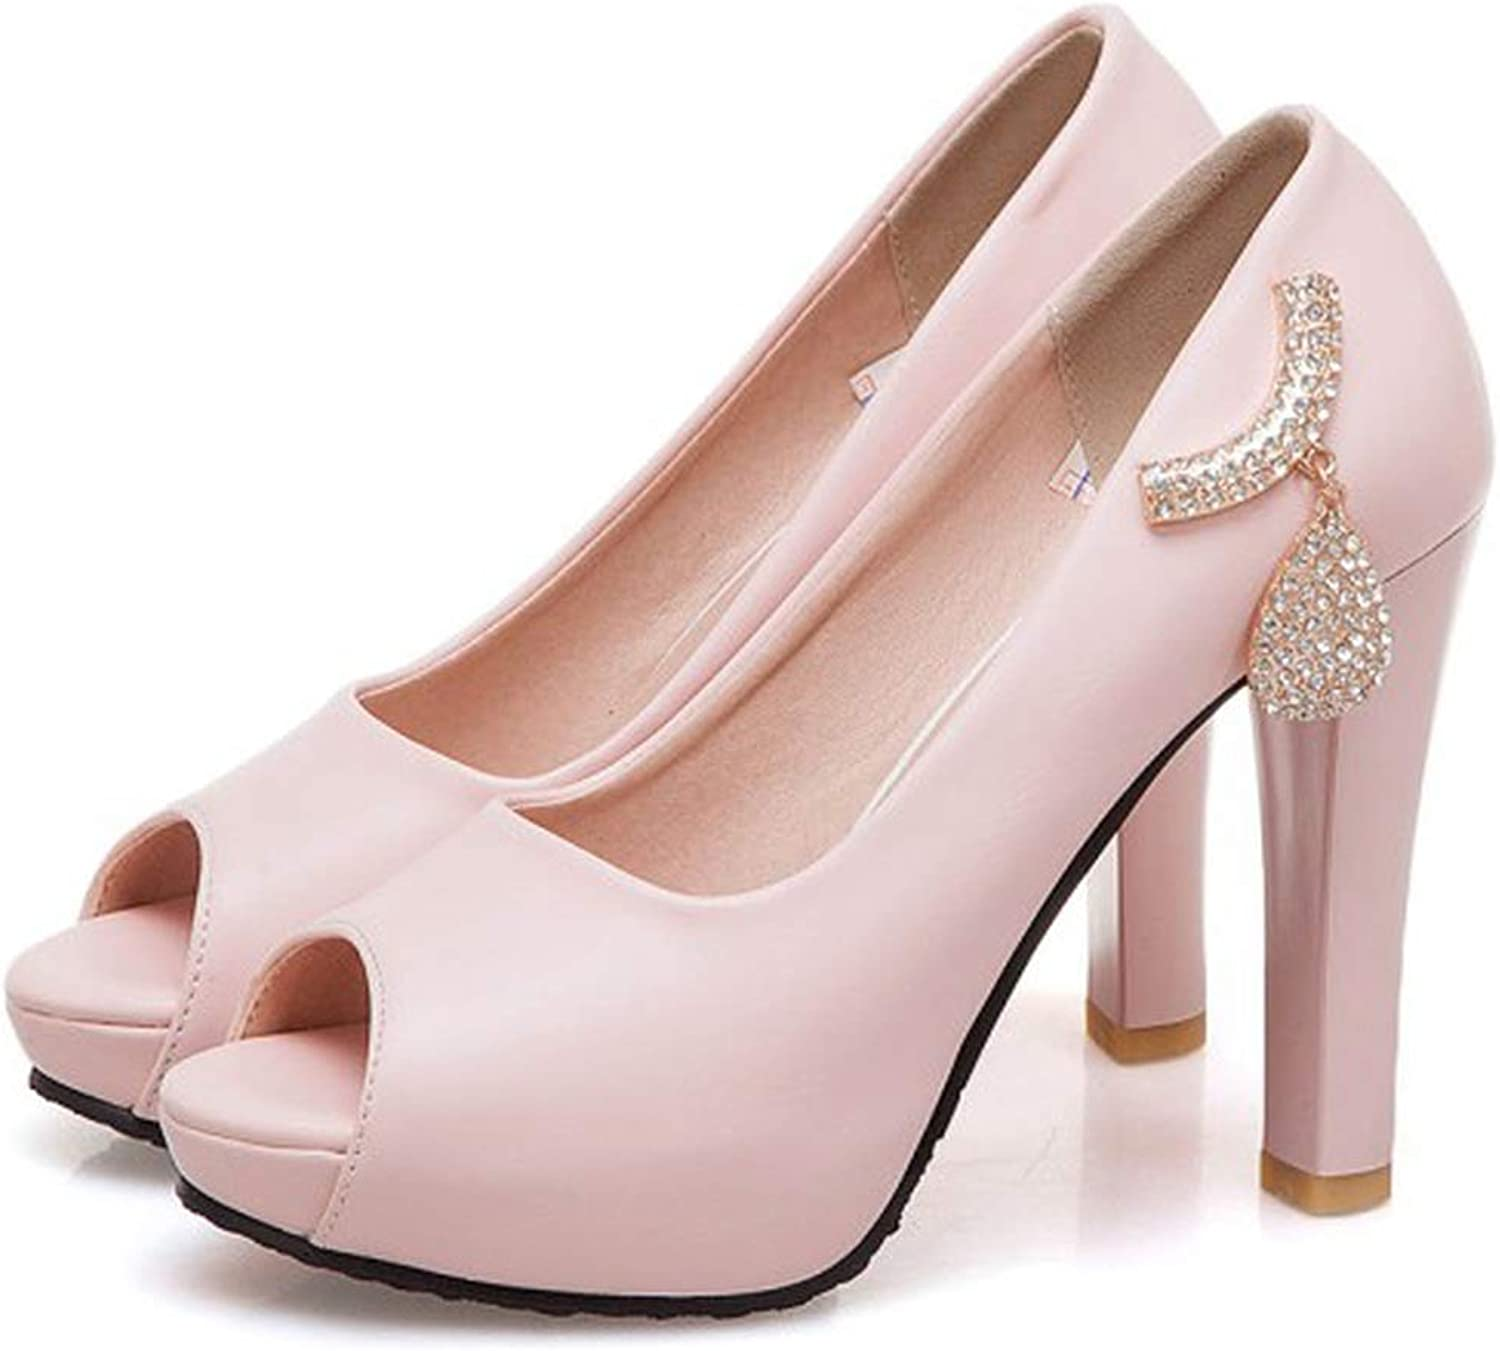 Women's Sandals Summer Crystal Fish Mouth Open Toe Thick Heel High Heel Women's shoes Plus Size,2,8